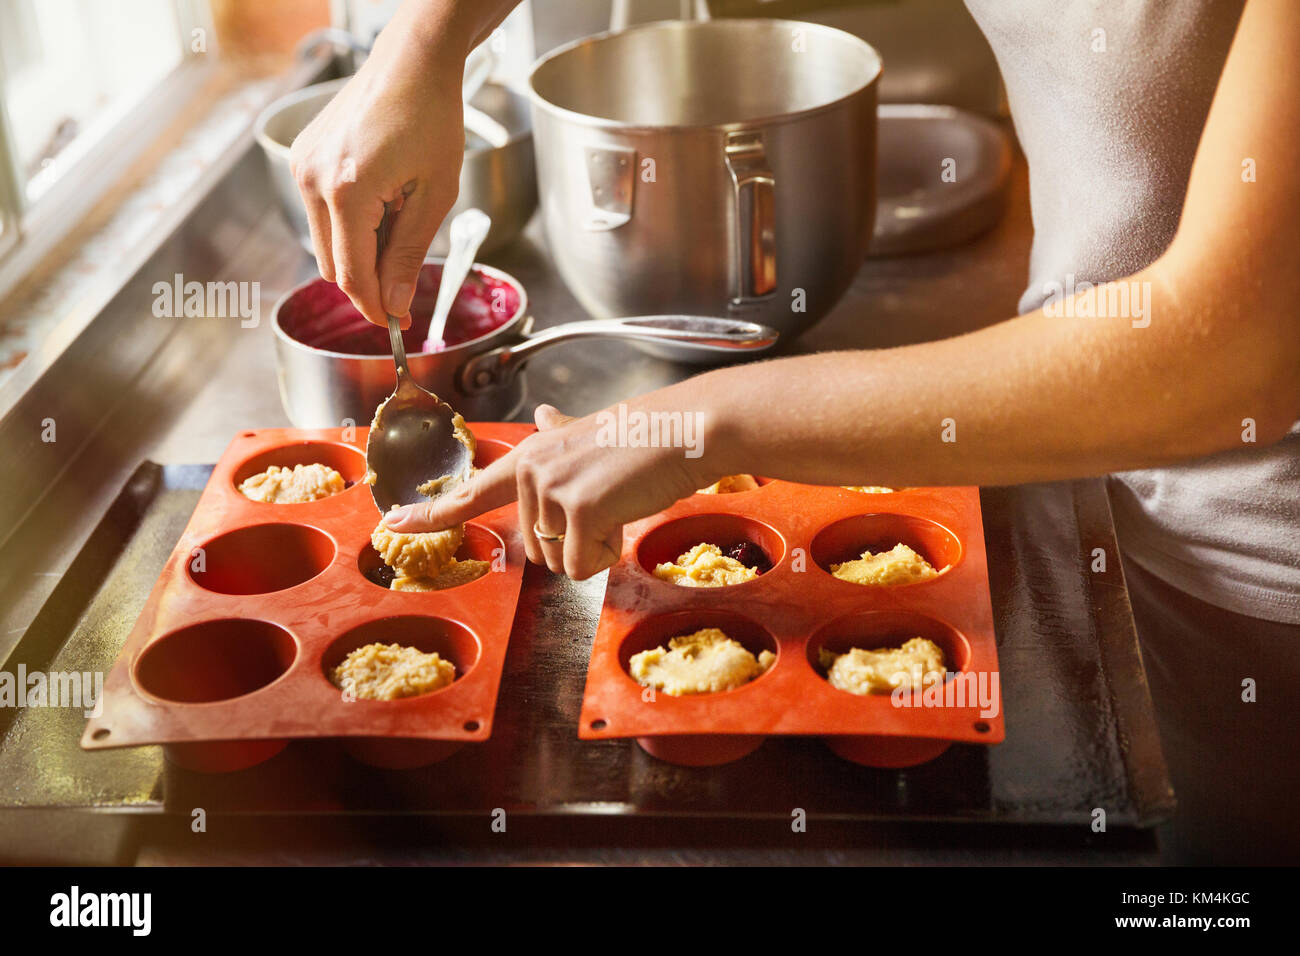 High angle close up person using spoon to place small portions of cake dough into silicone mold. - Stock Image